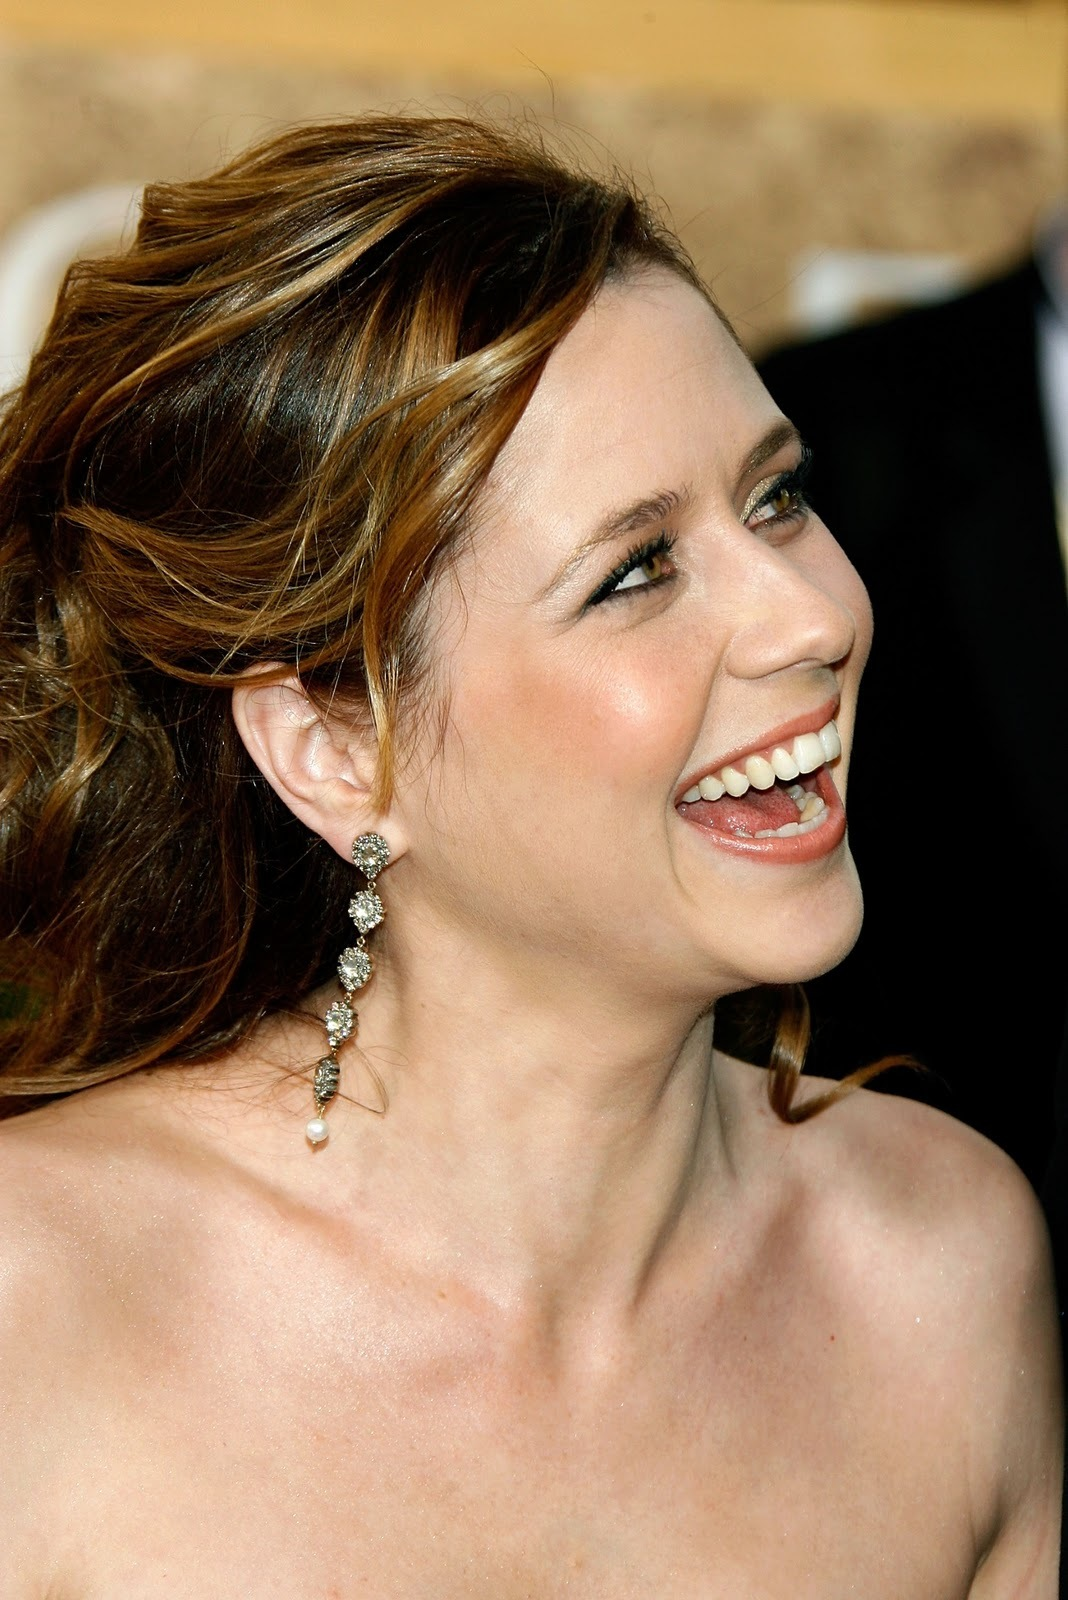 jenna fischer HD Wallpaper